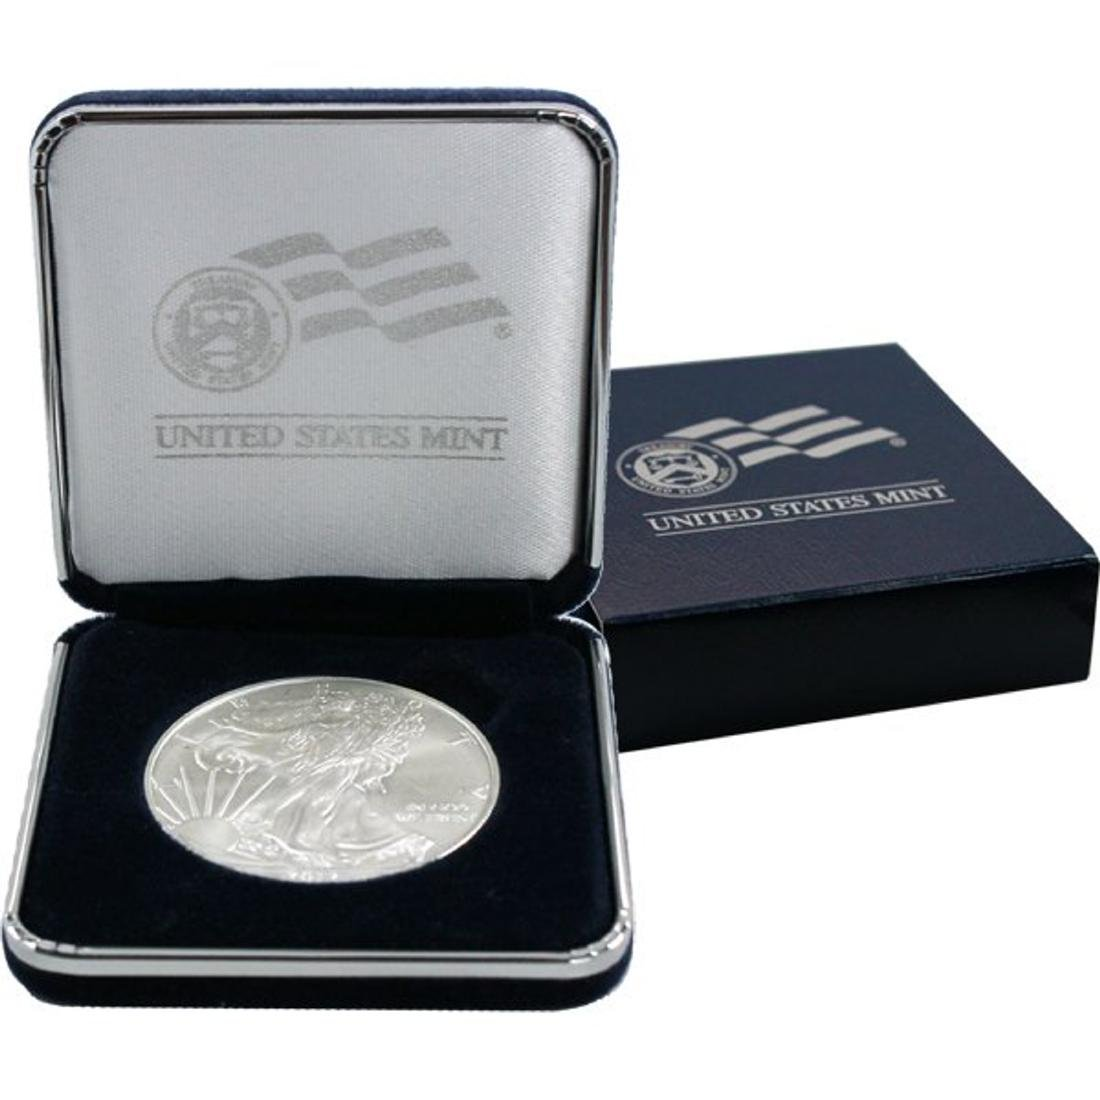 2012 US Silver Eagle in Mint Case